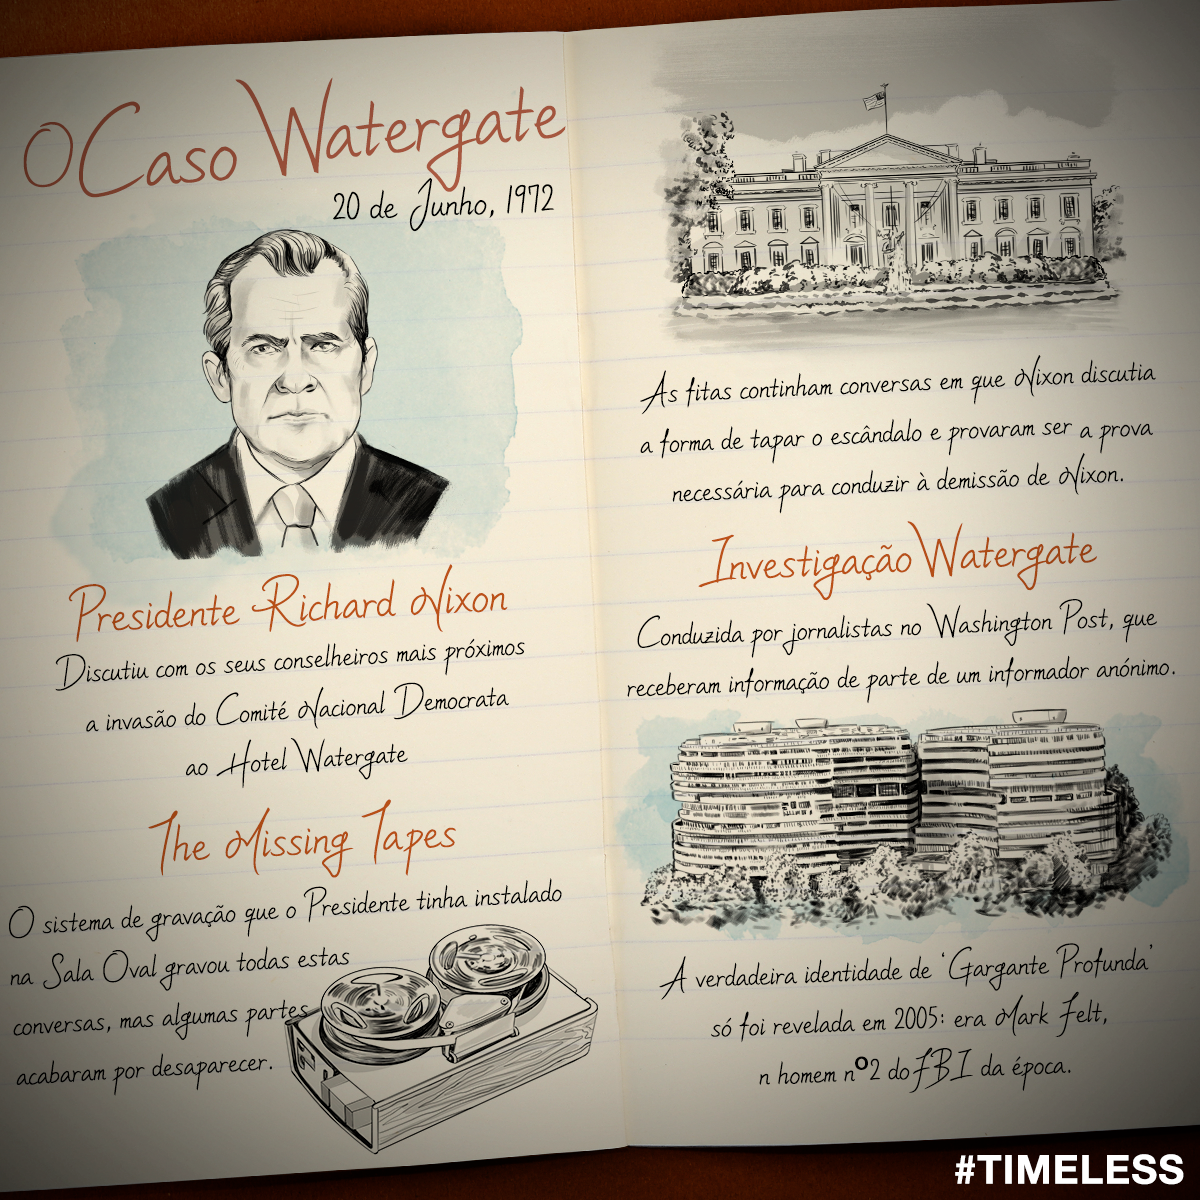 nbc_timeless_journal_watergate_01